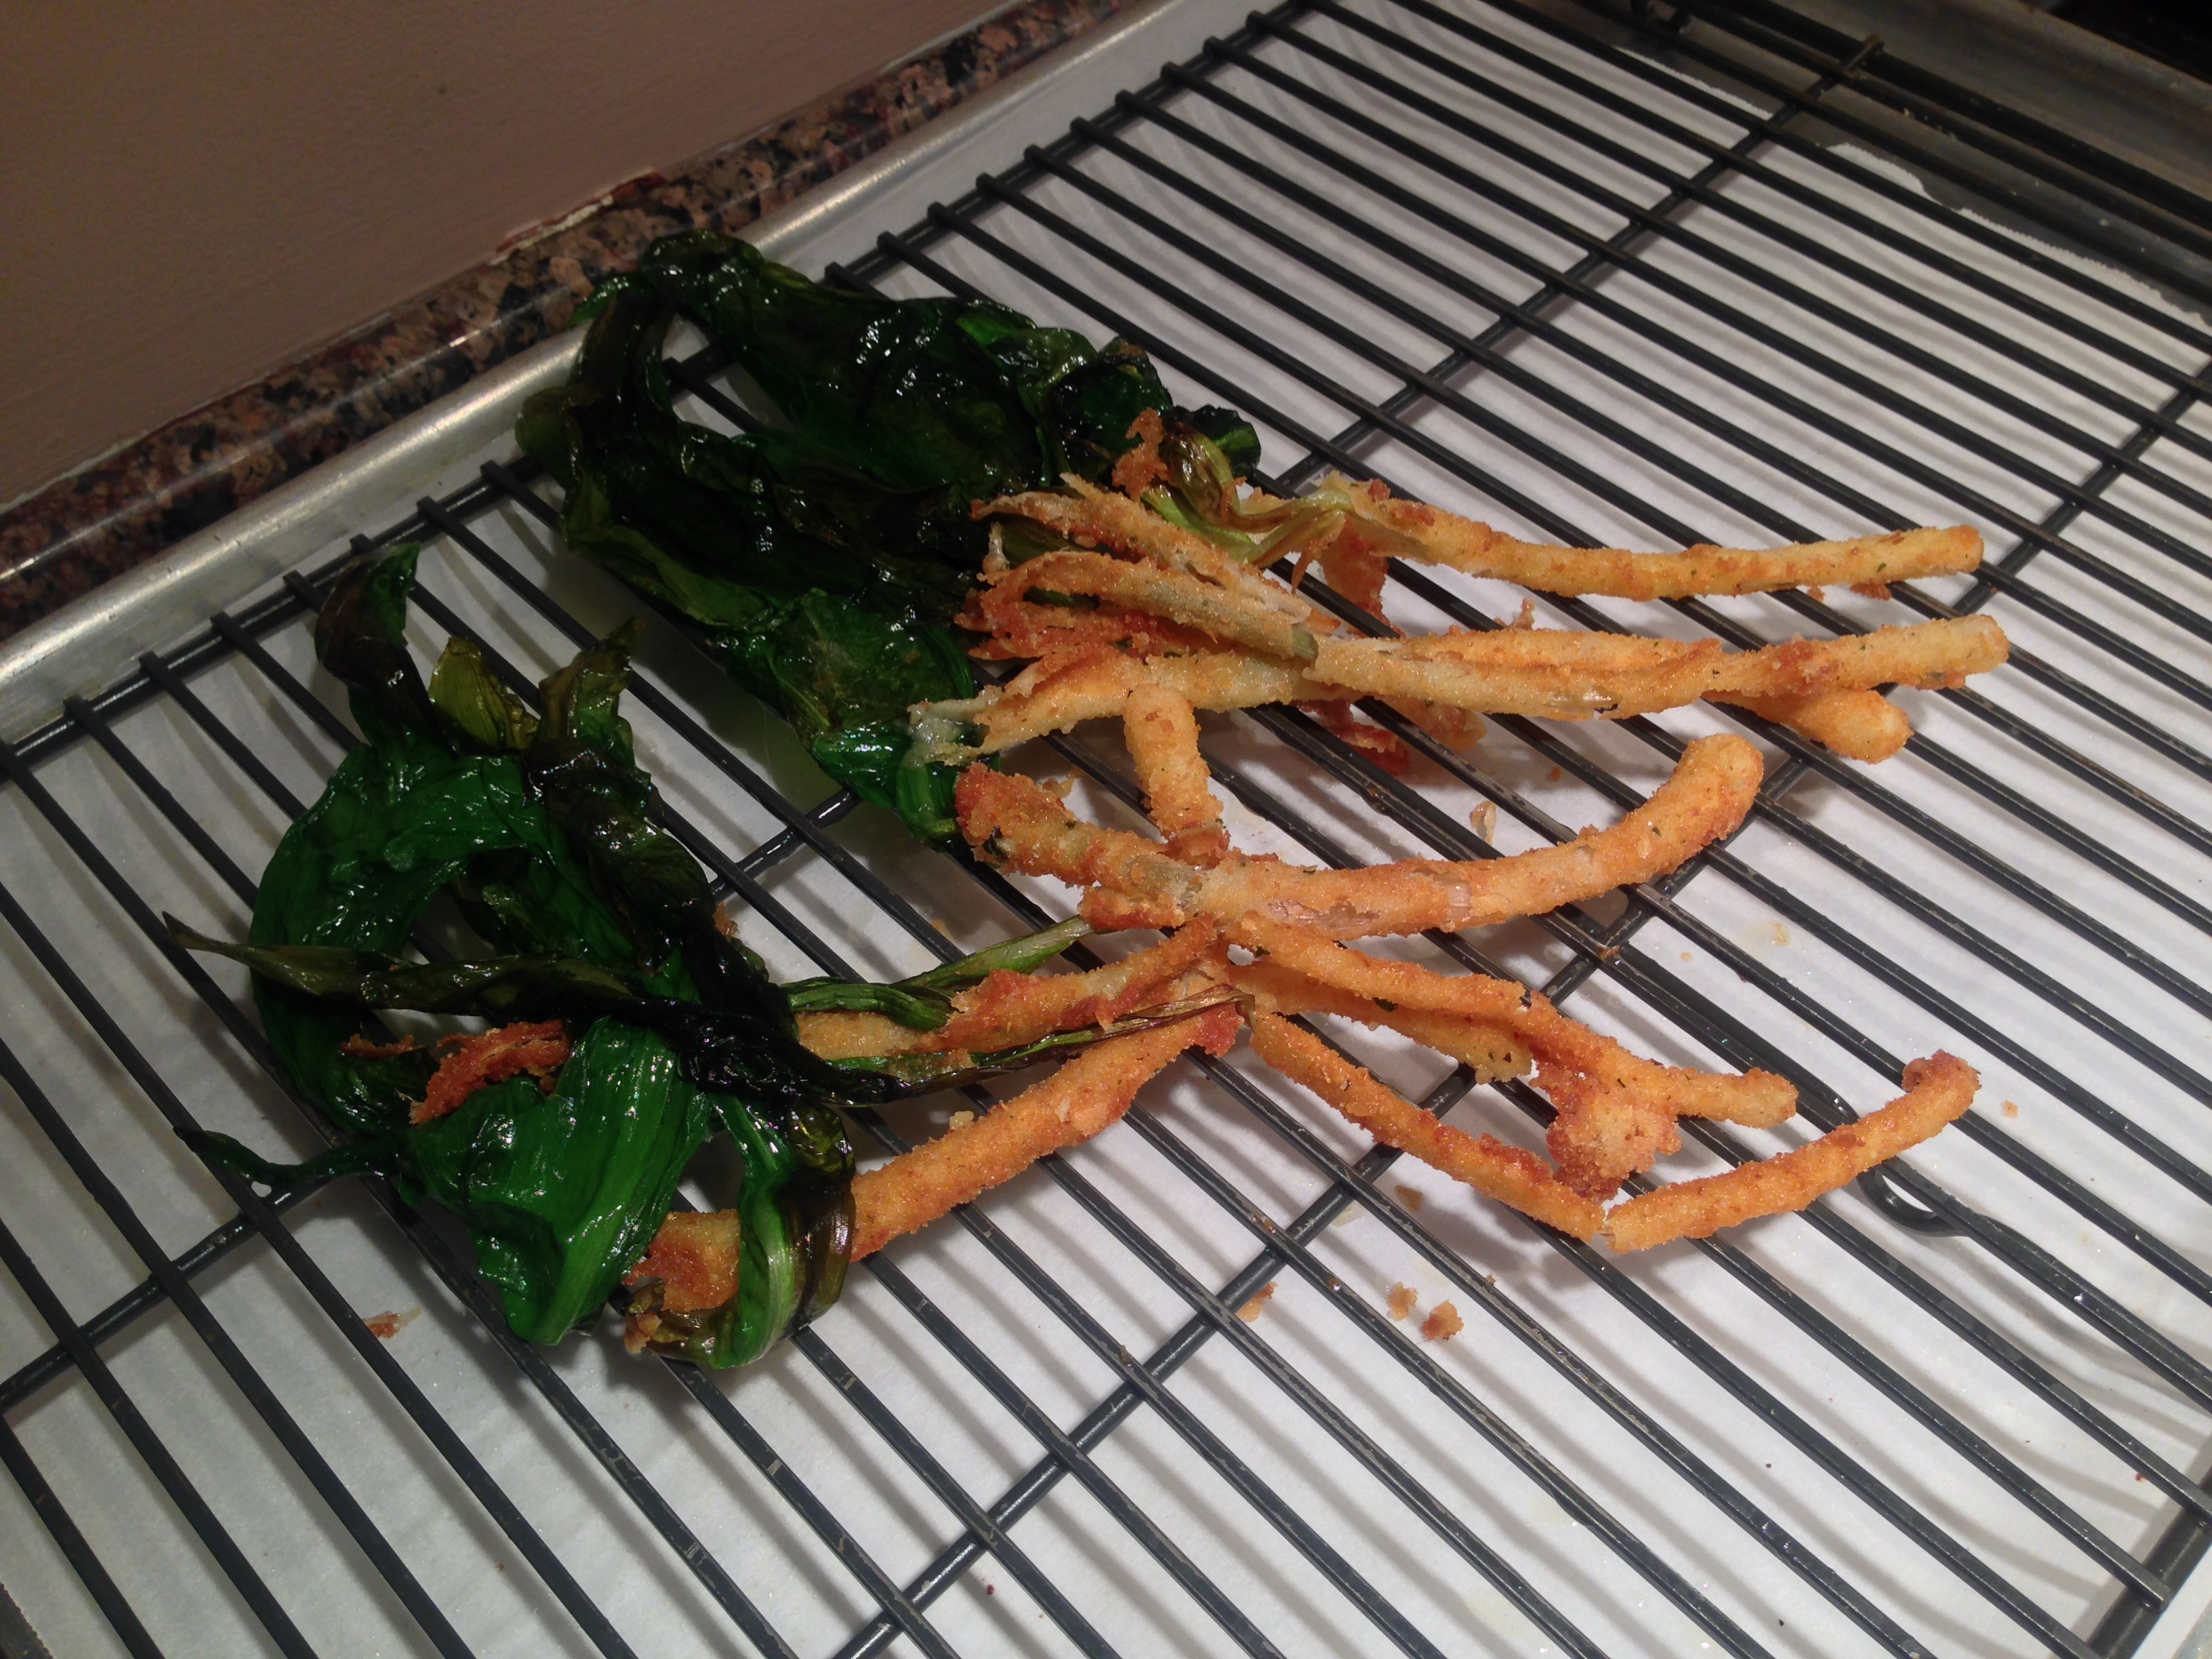 Greens attached and fried